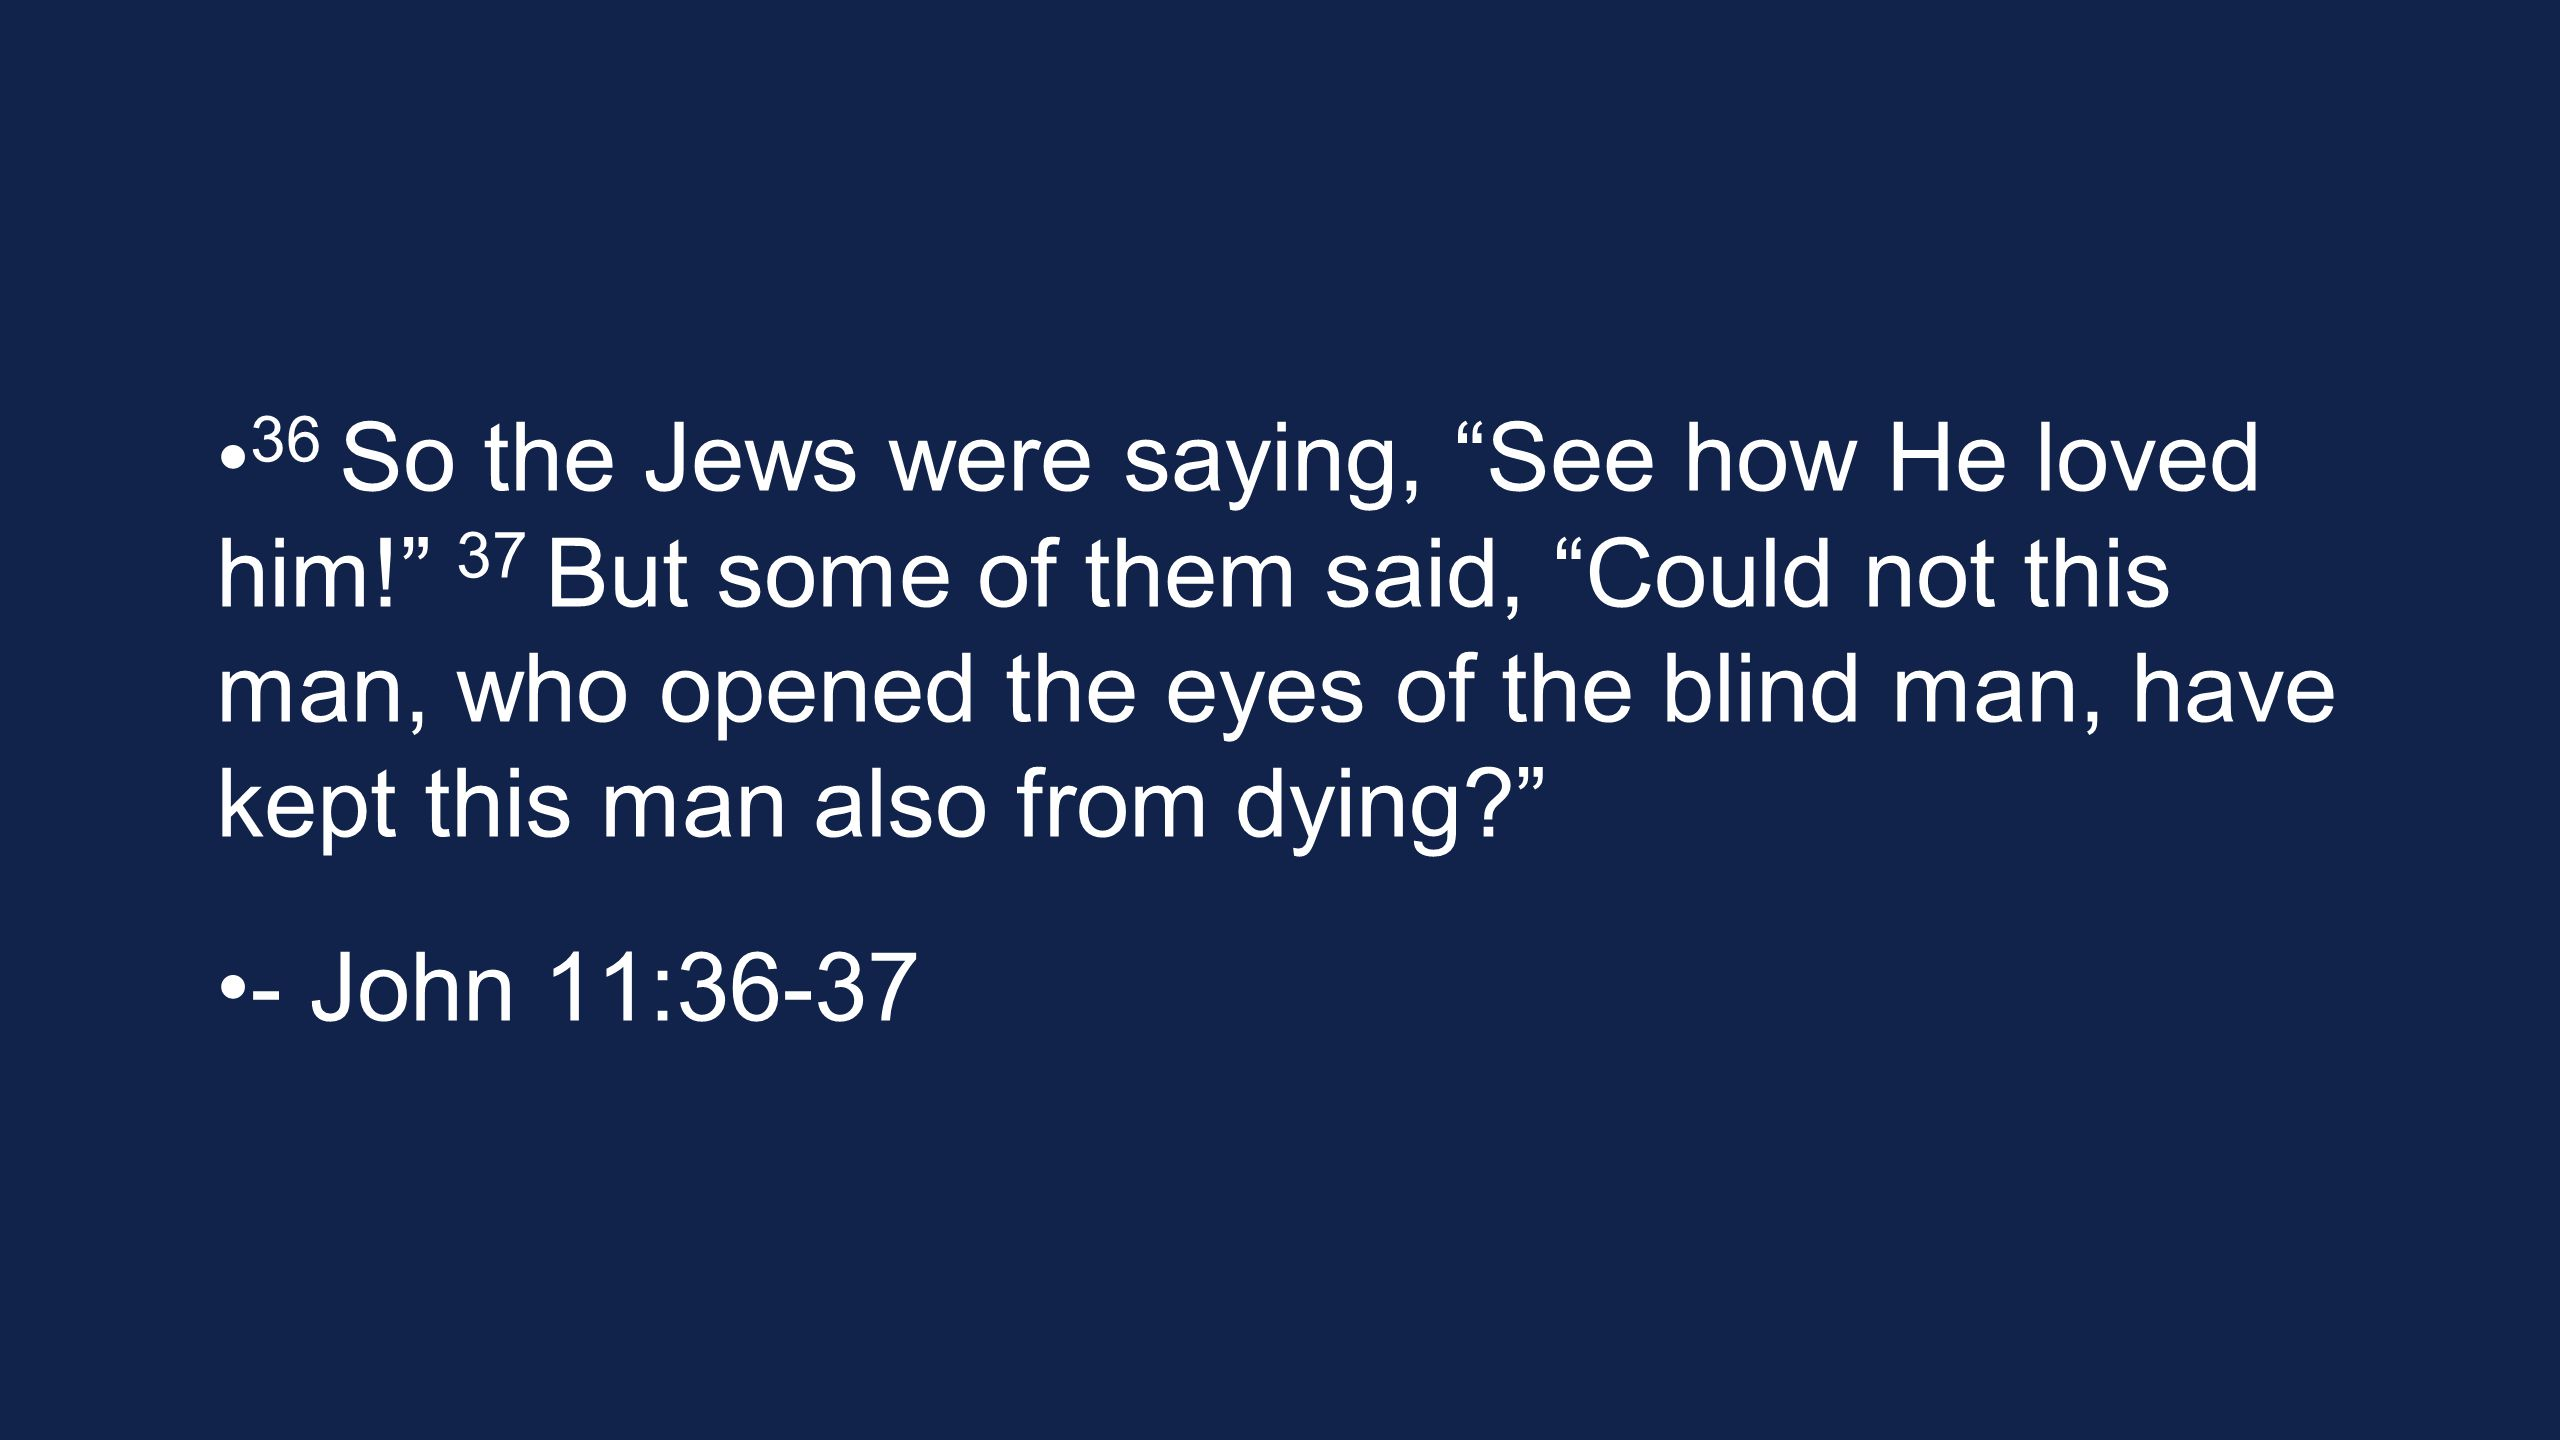 36 So the Jews were saying, See how He loved him! 37 But some of them said, Could not this man, who opened the eyes of the blind man, have kept this man also from dying? - John 11:36-37